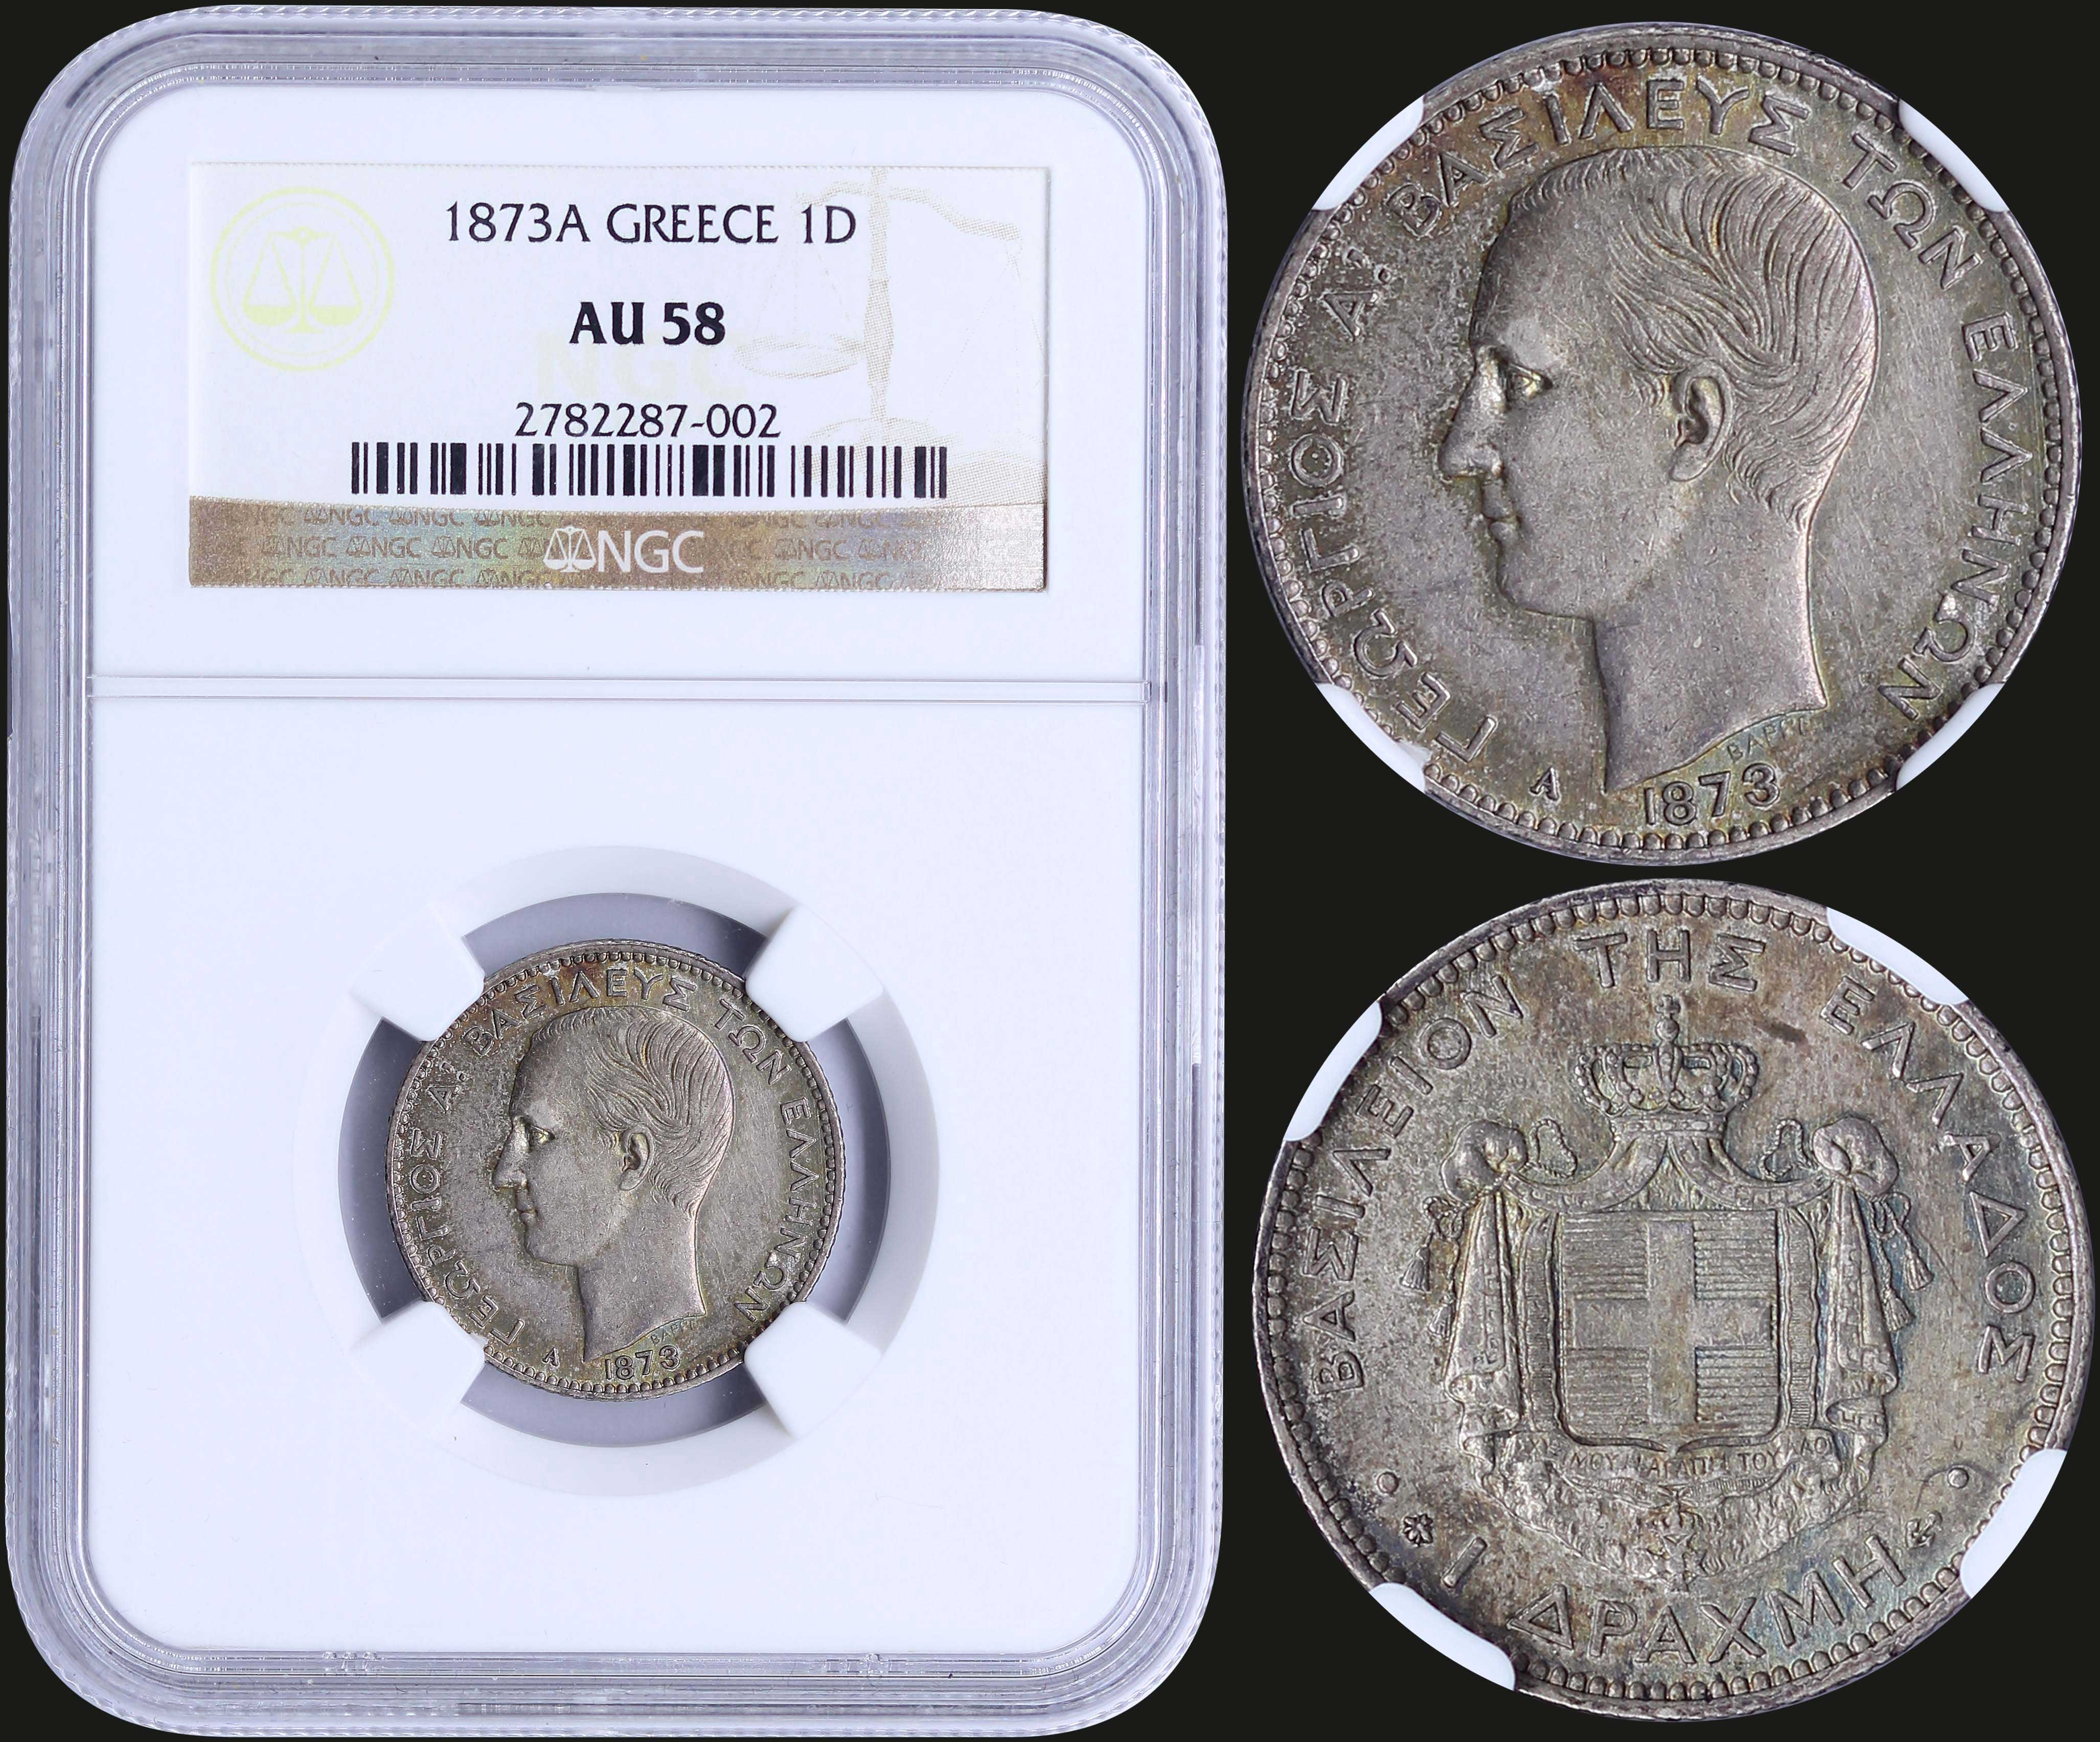 Lot 9079 - GREECE-  COINS & TOKENS king george i -  A. Karamitsos Public & LIVE Bid Auction 610 Coins, Medals & Banknotes